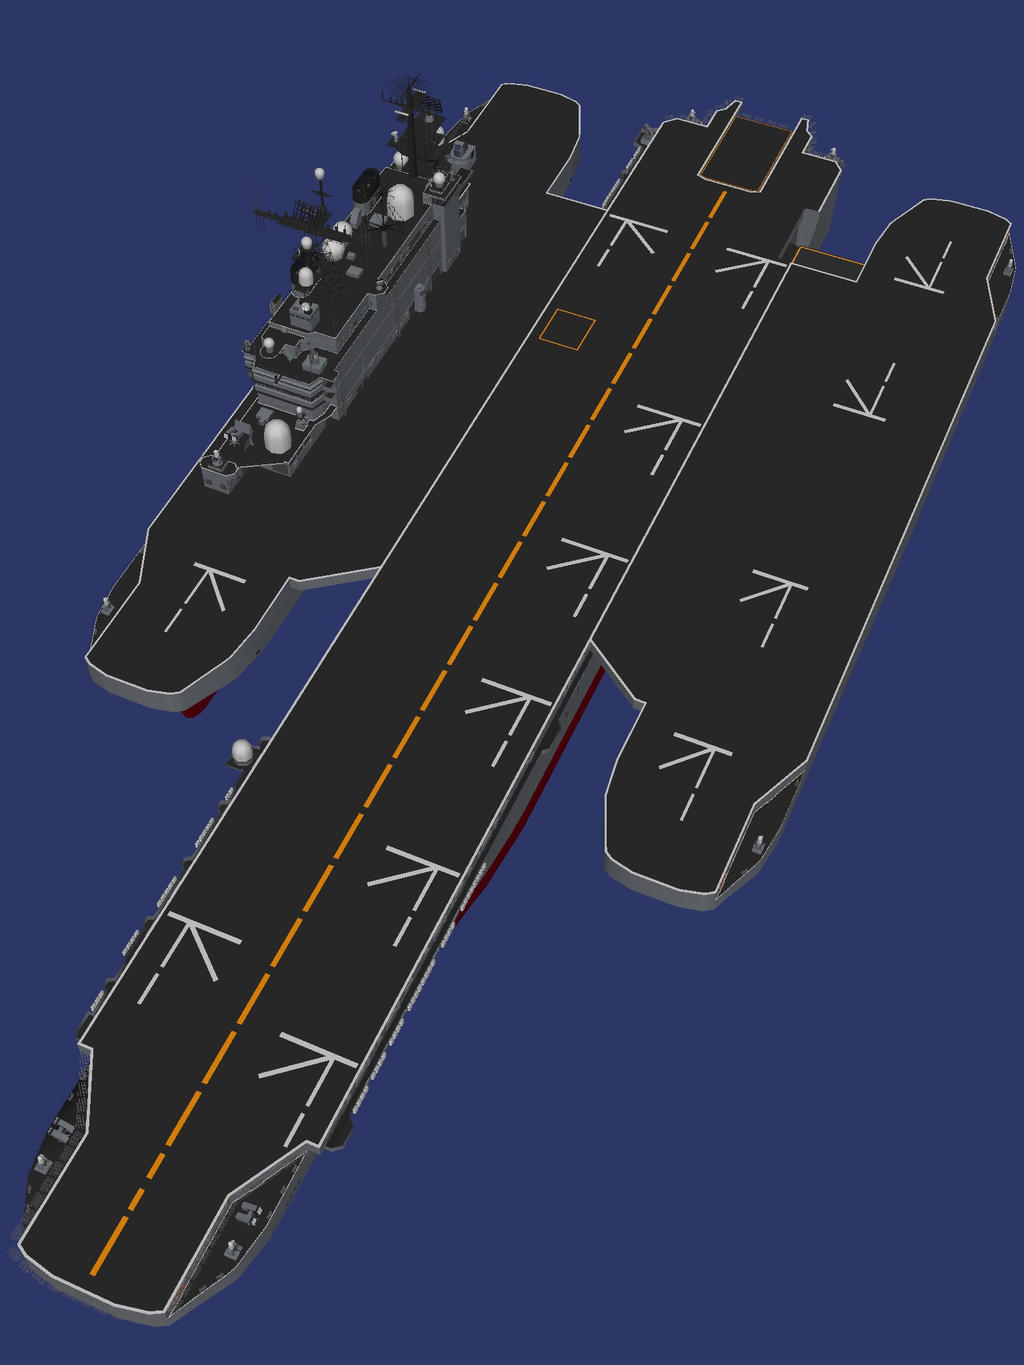 Trimaran aircraft carrier by kcida10 on DeviantArt